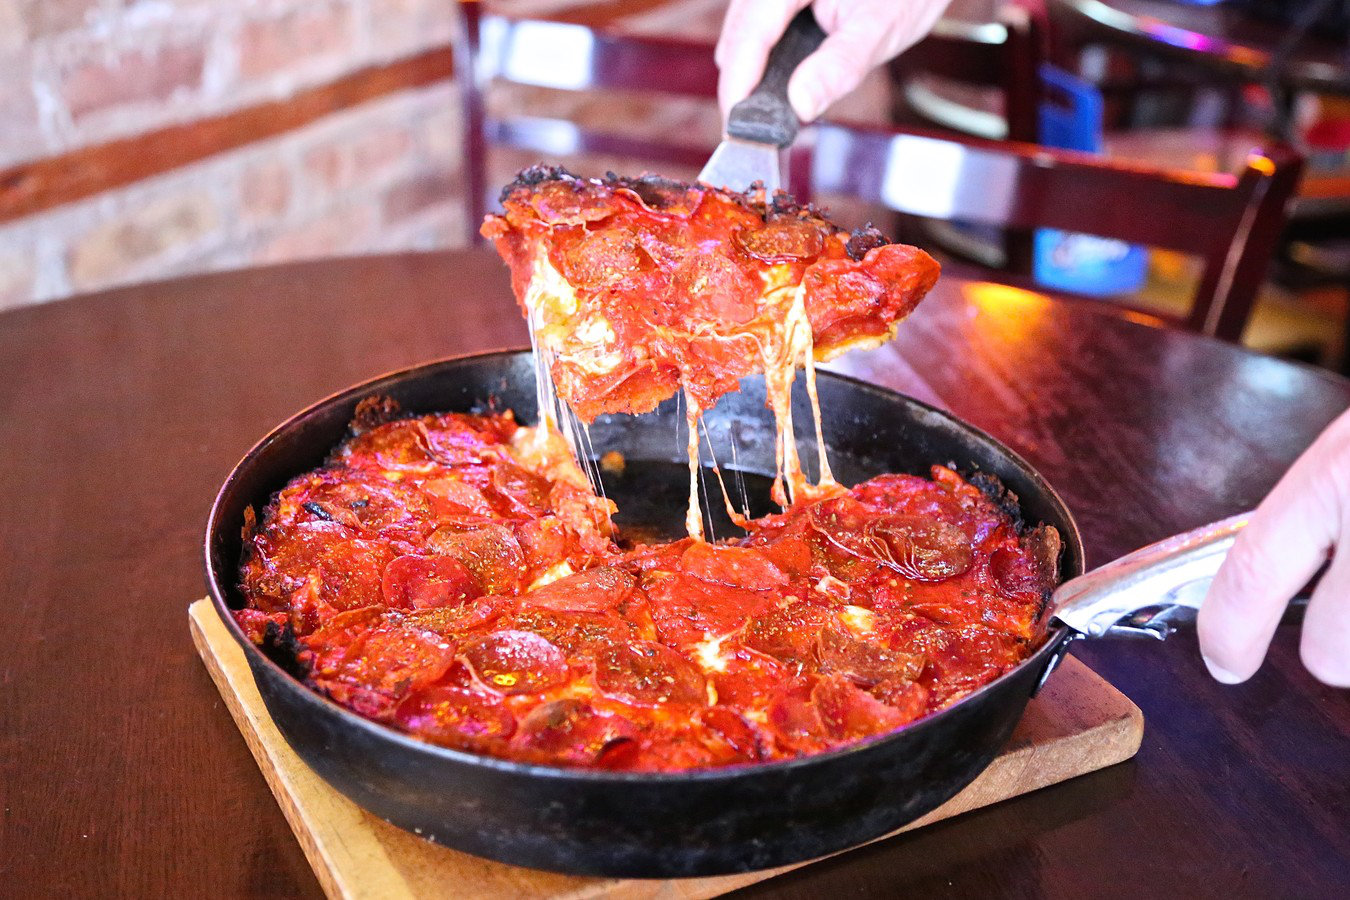 pequods-carmelized-deep-dish-pizza